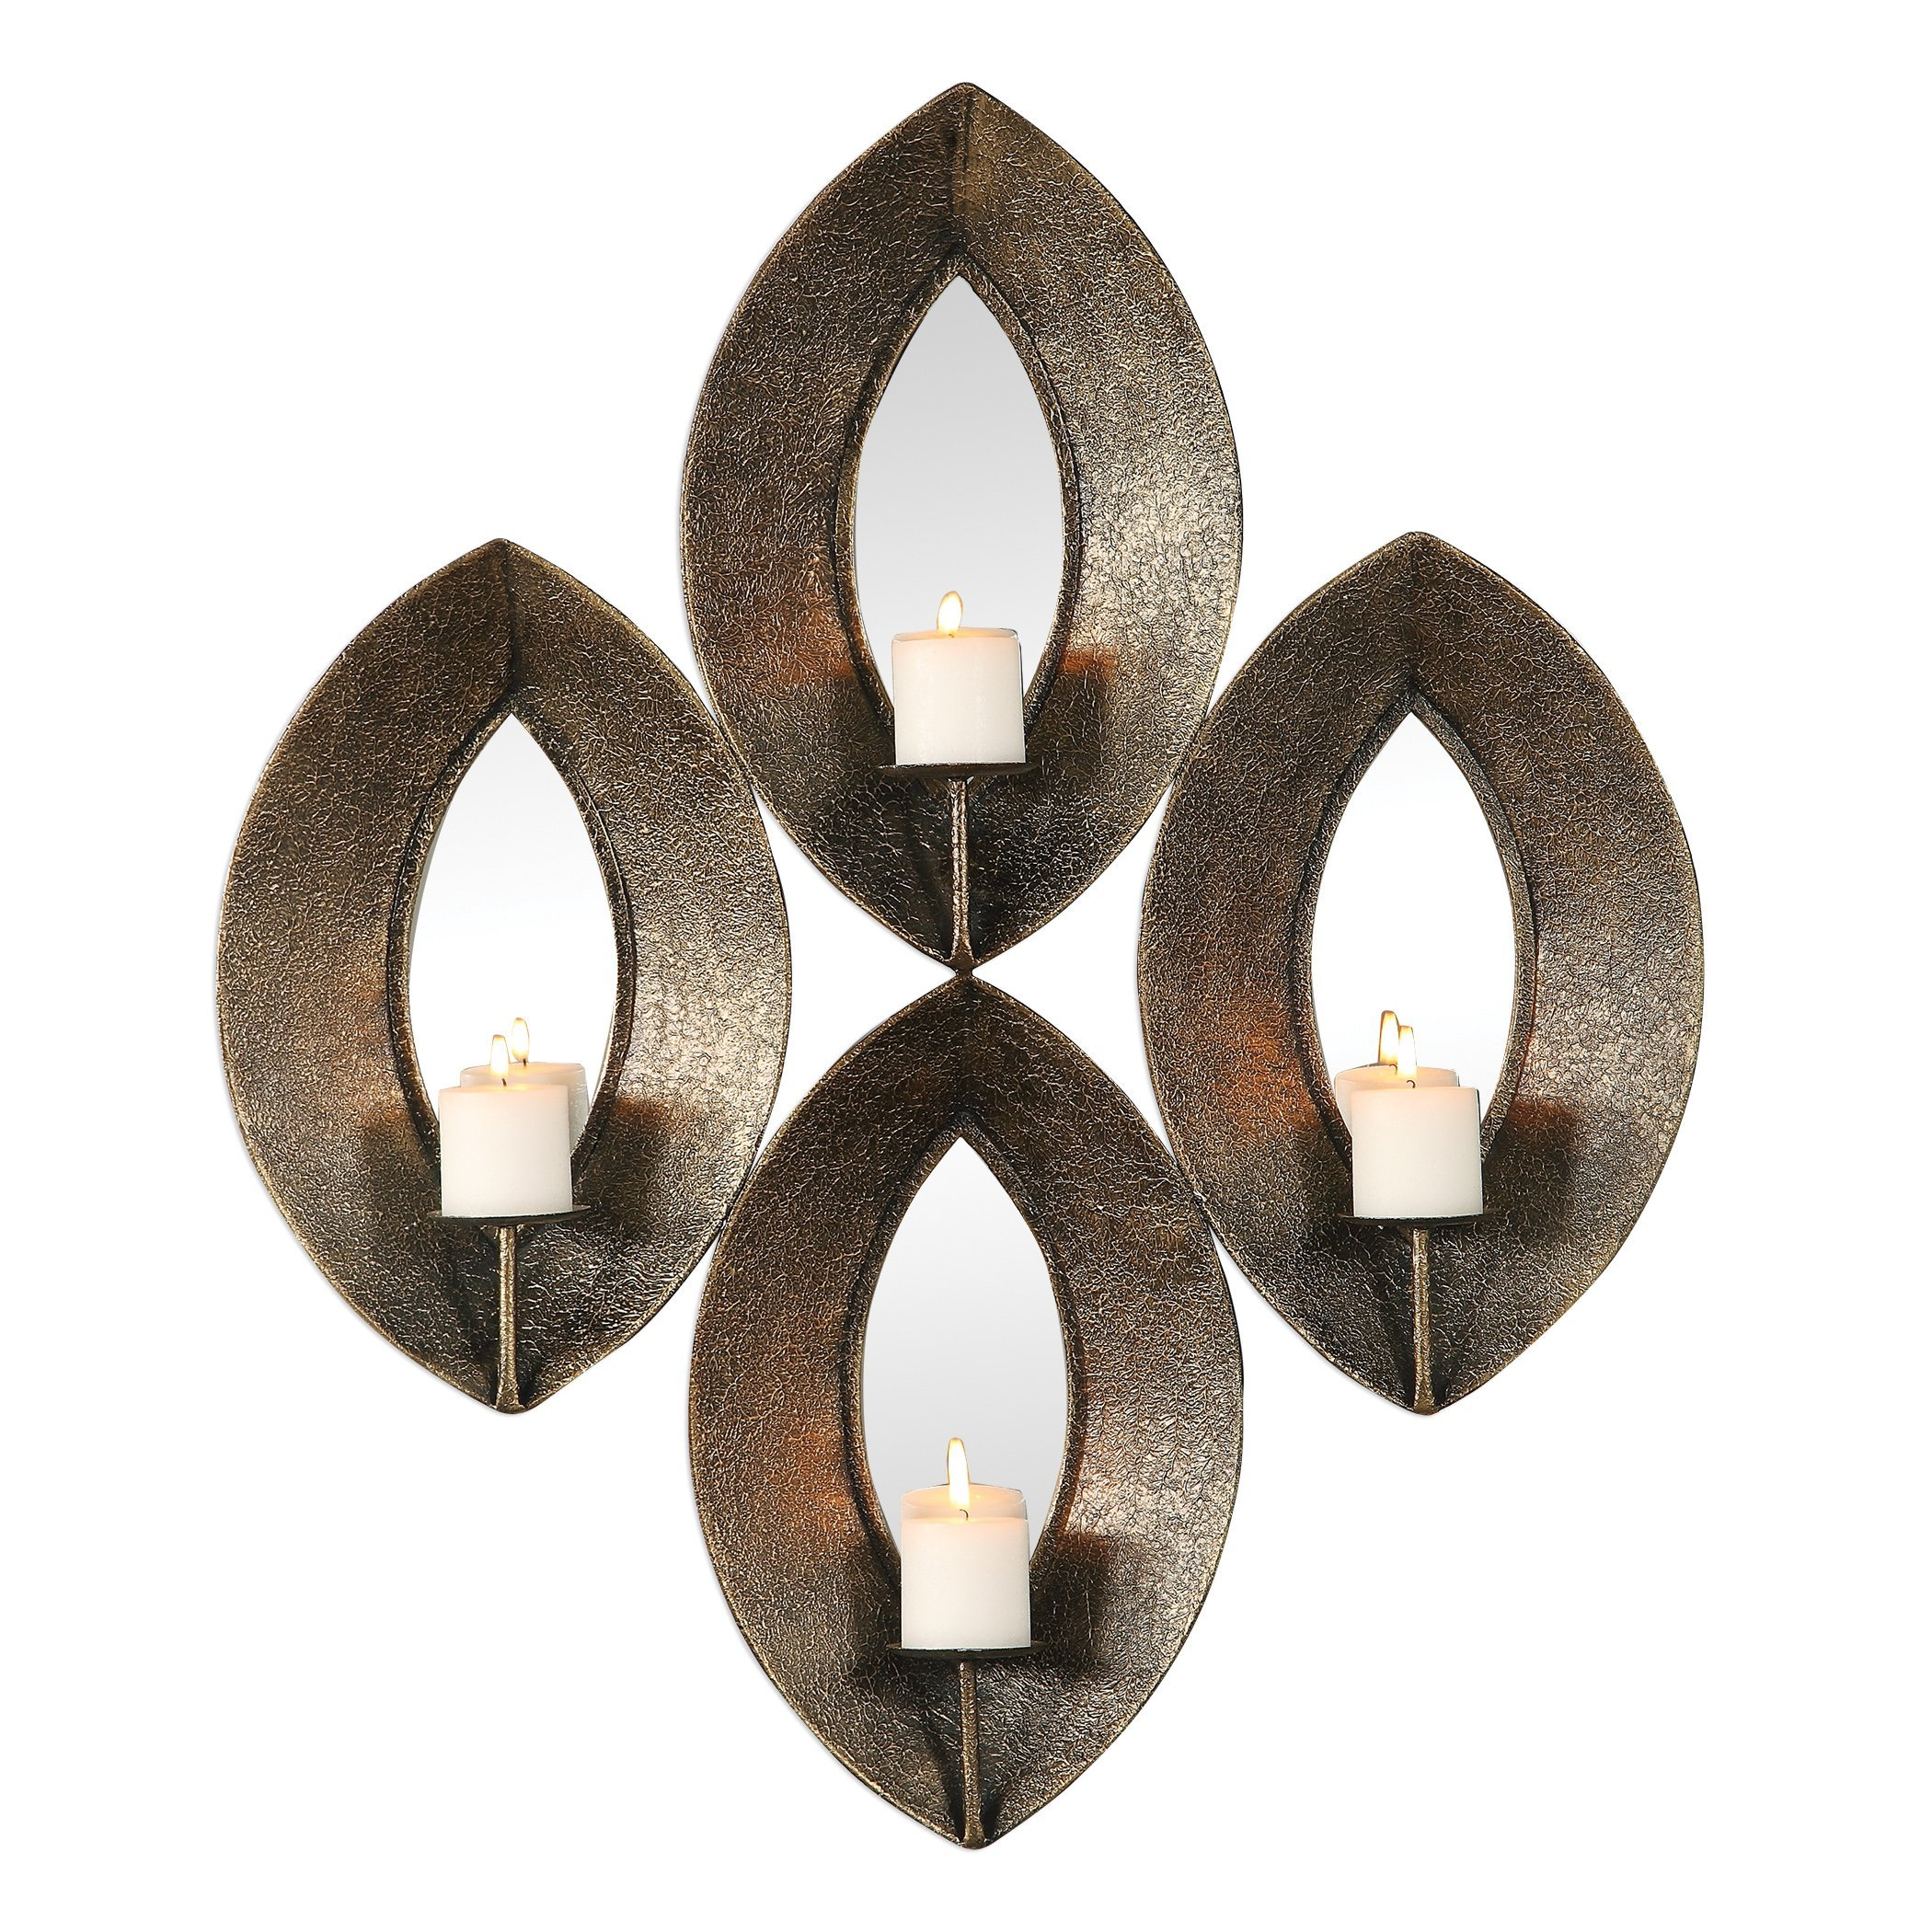 My Swanky Home Elegant Bronze Ovals Mirrored Wall Candle Sconce   Multi 4 Pilllar Mid Century